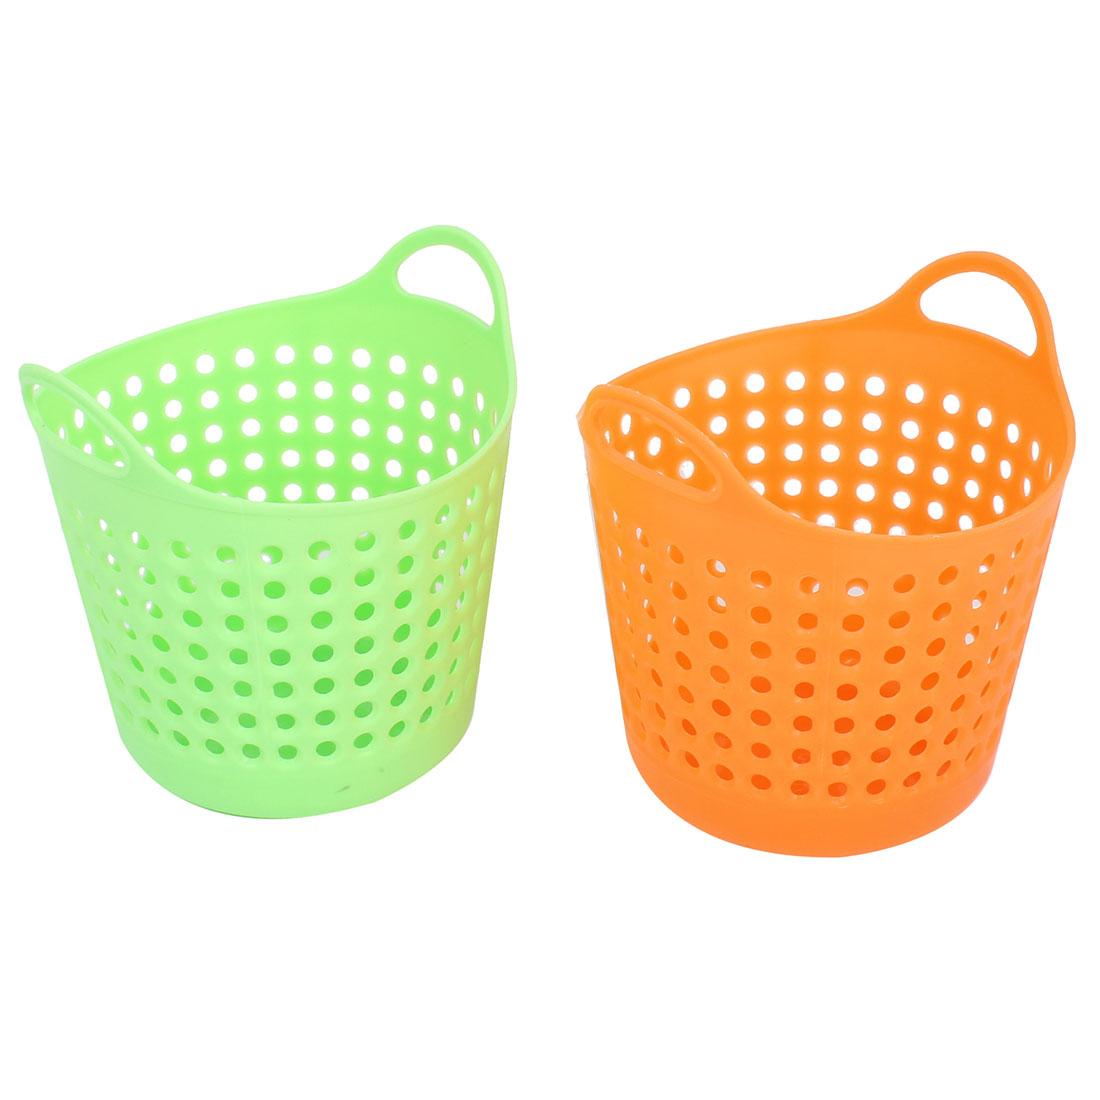 Desktop Green Orange Plastic Storage Basket Container Holder 2 Pcs